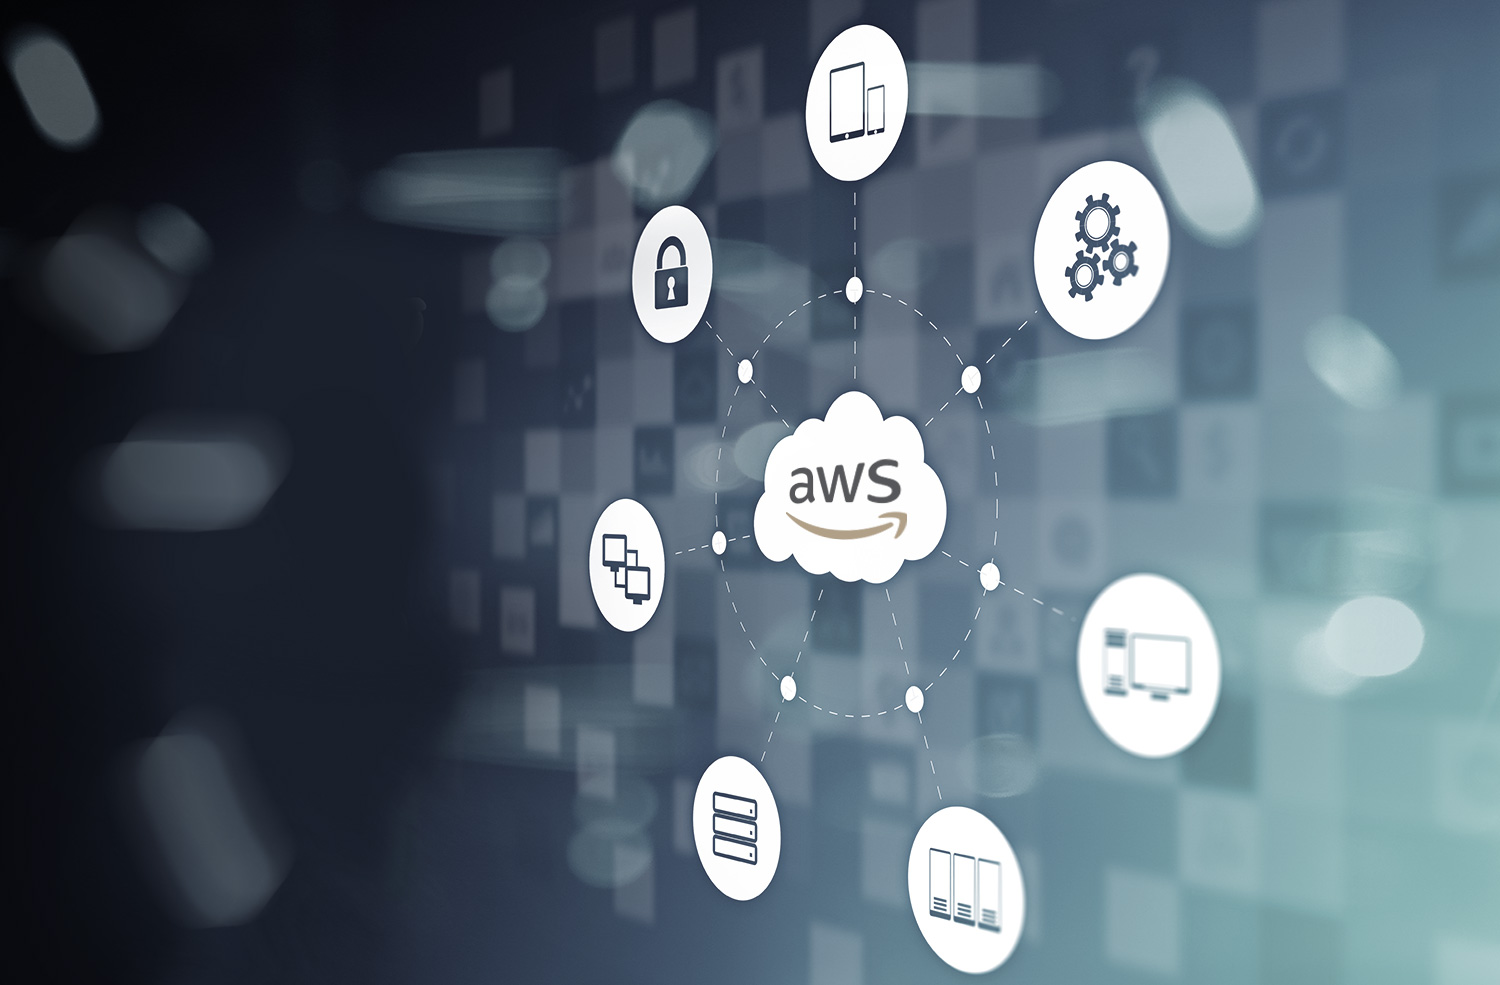 AWS icon in cloud surrounded by web icons